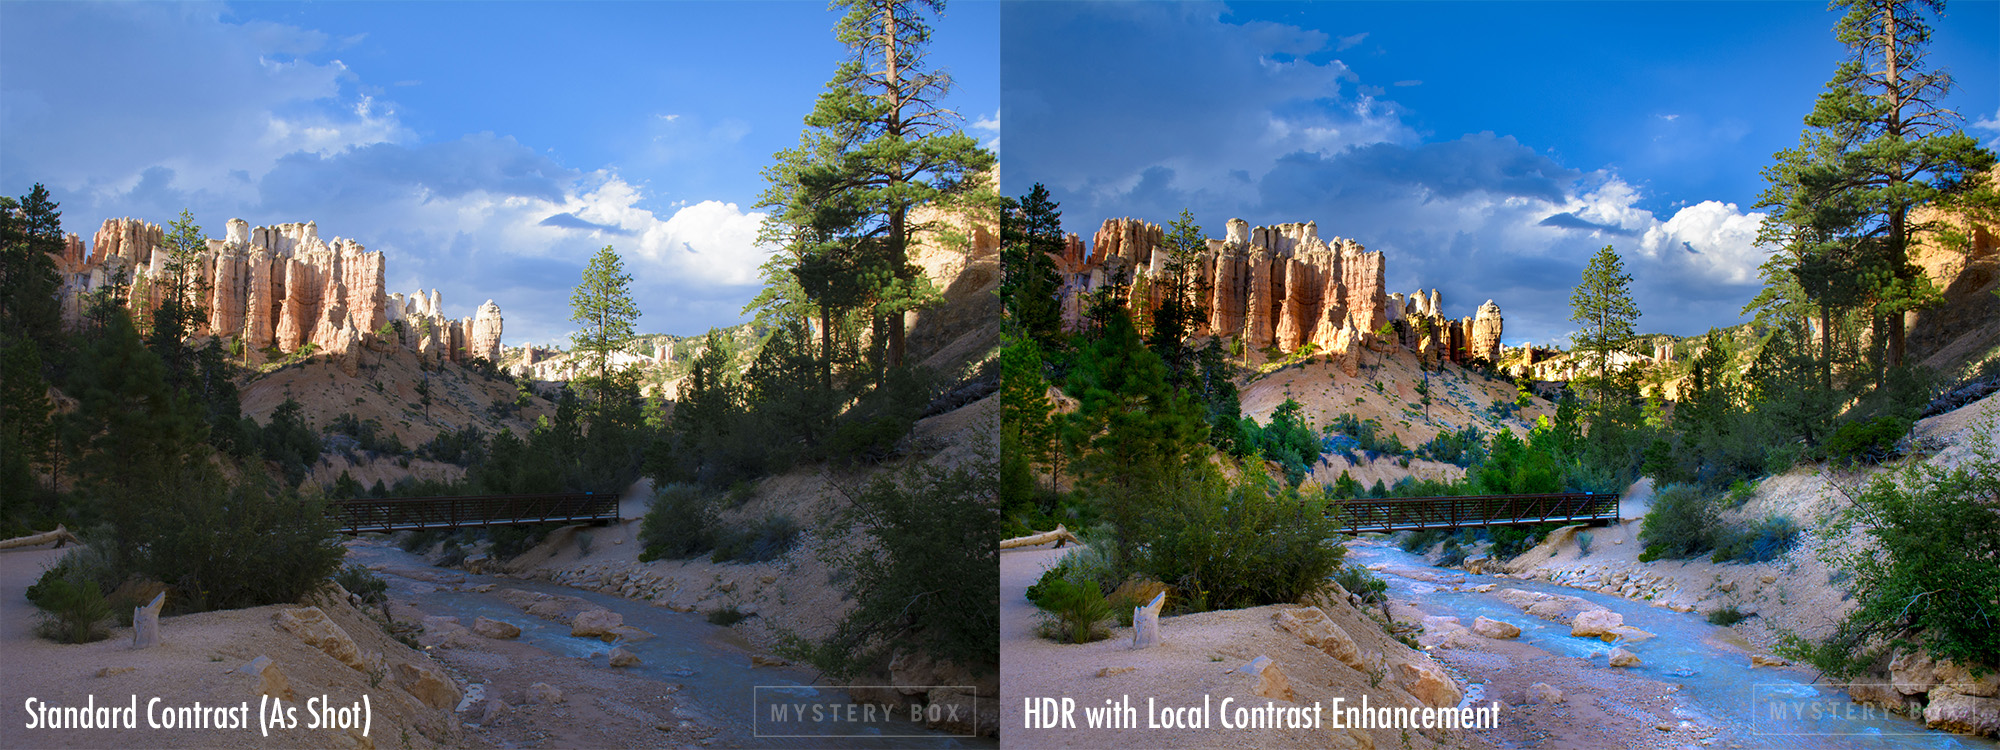 Photograph with standard contrast vs. the same with local contrast